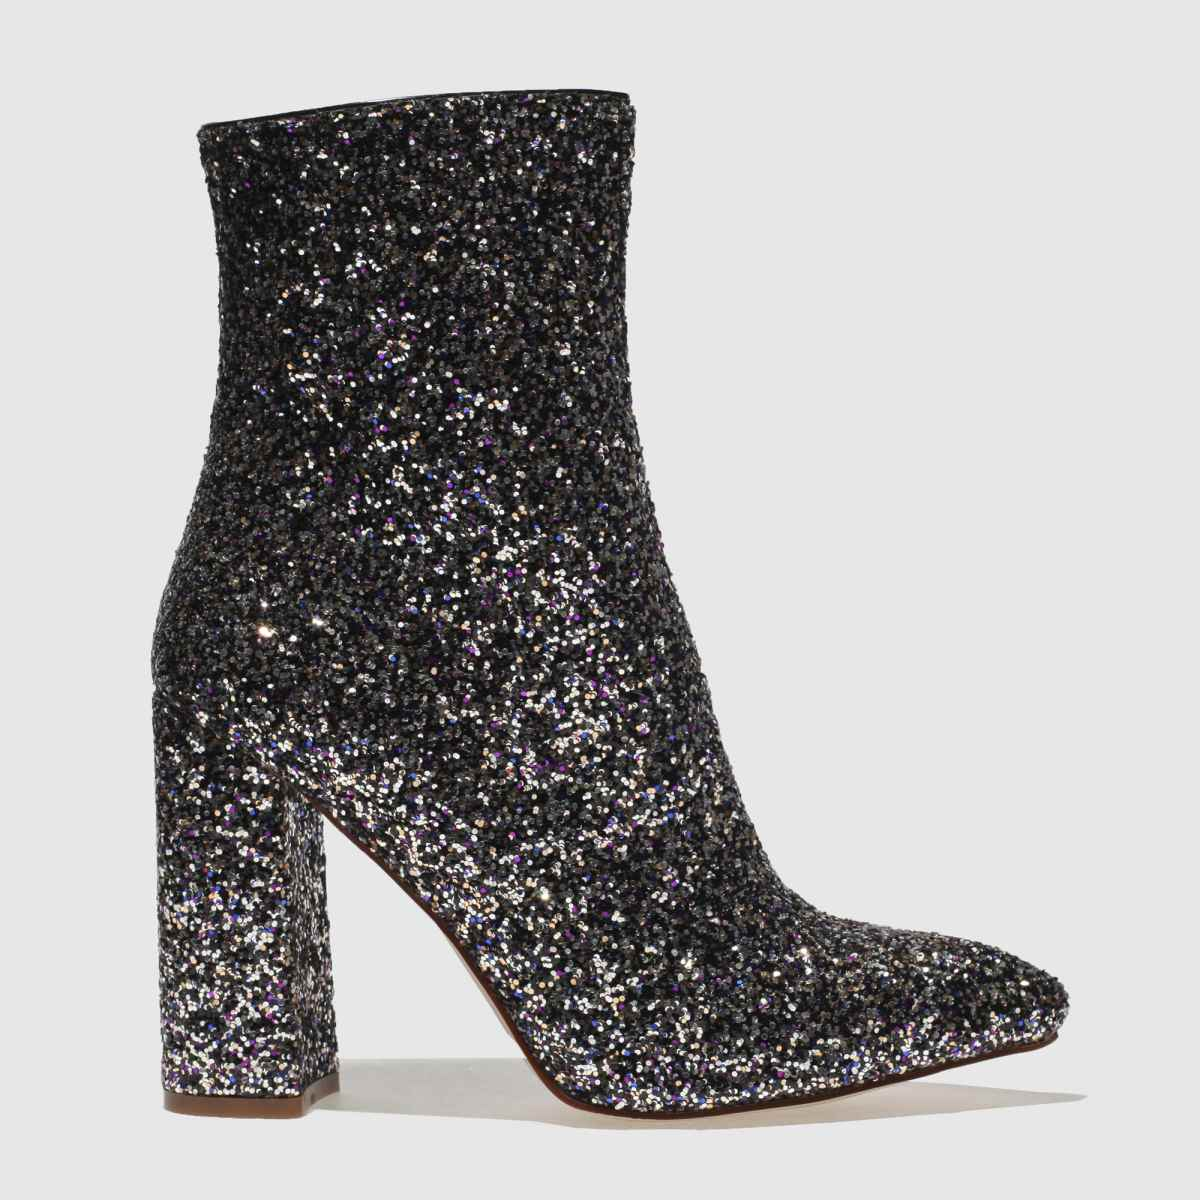 missguided Missguided Black & Purple Flared Glitter Boots